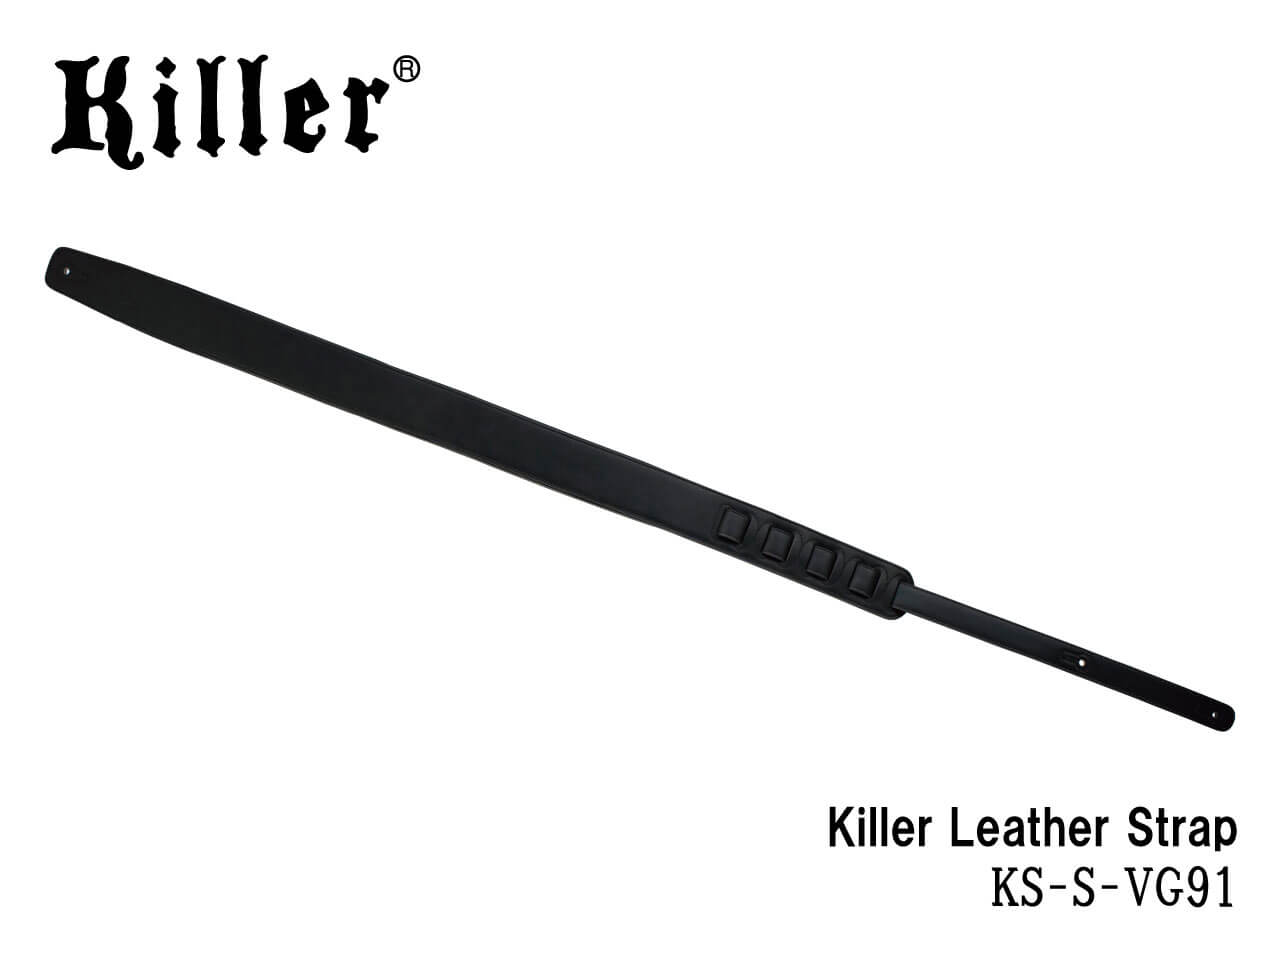 Killer(キラー) Leather Strap / KS-S-VG91 (ストラップ)